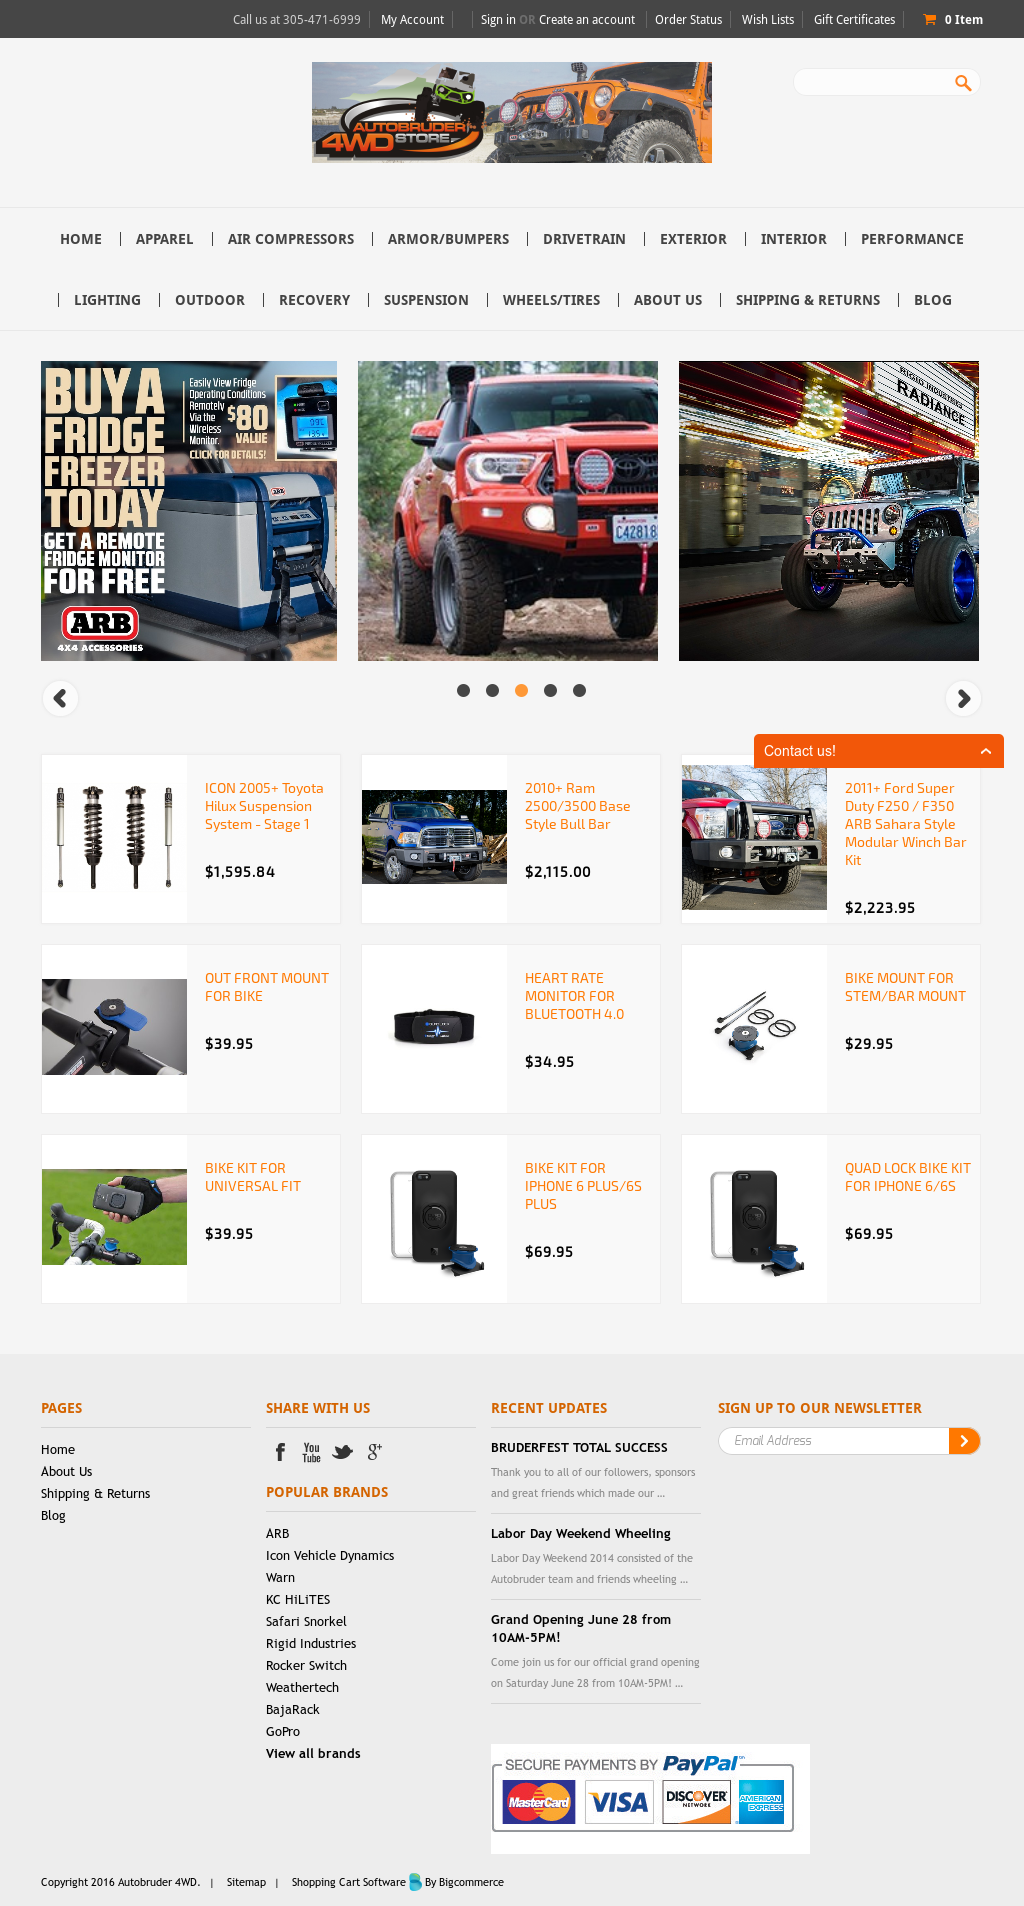 Autobruder 4wd Store Competitors, Revenue and Employees - Owler